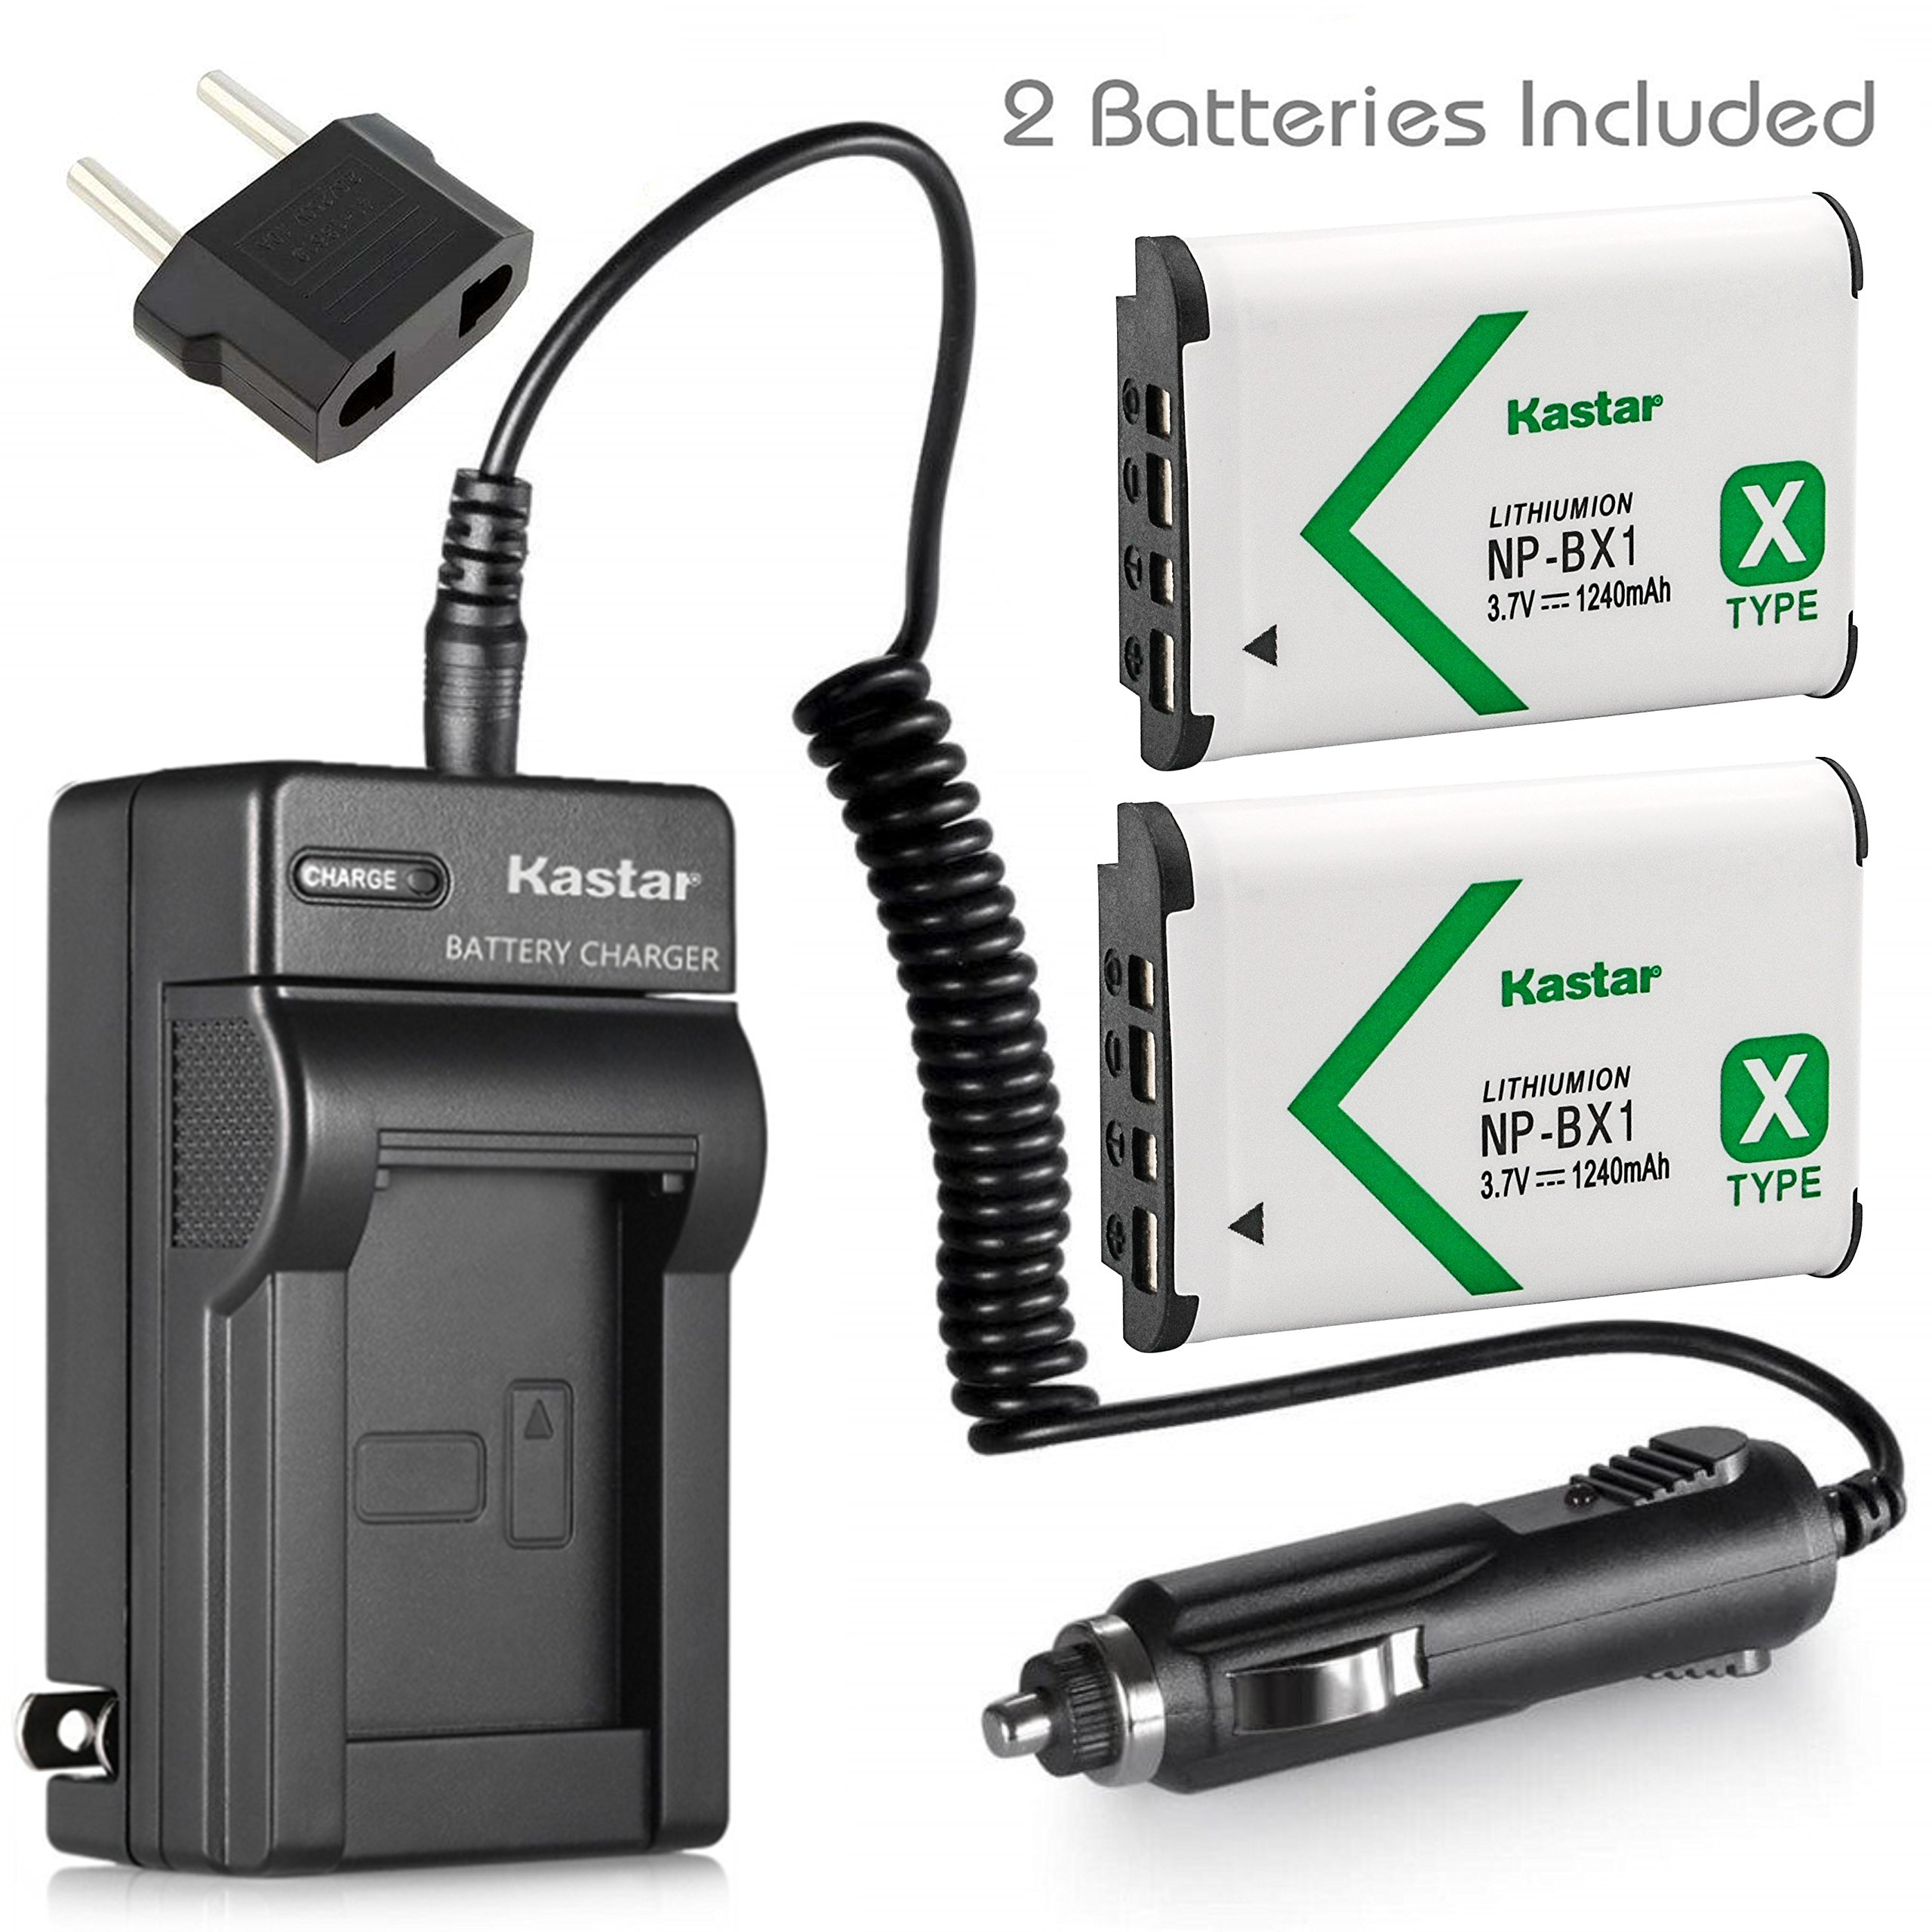 Kastar Battery (2-Pack) and Charger for Sony HDR-CX240 HDR-CX405 HDR-CX440 HDR-PJ240 HDR-PJ270 HDR-PJ405 HDR-PJ410 HDR-PJ440 Handycam Camcorder as NP-BX1 Battery